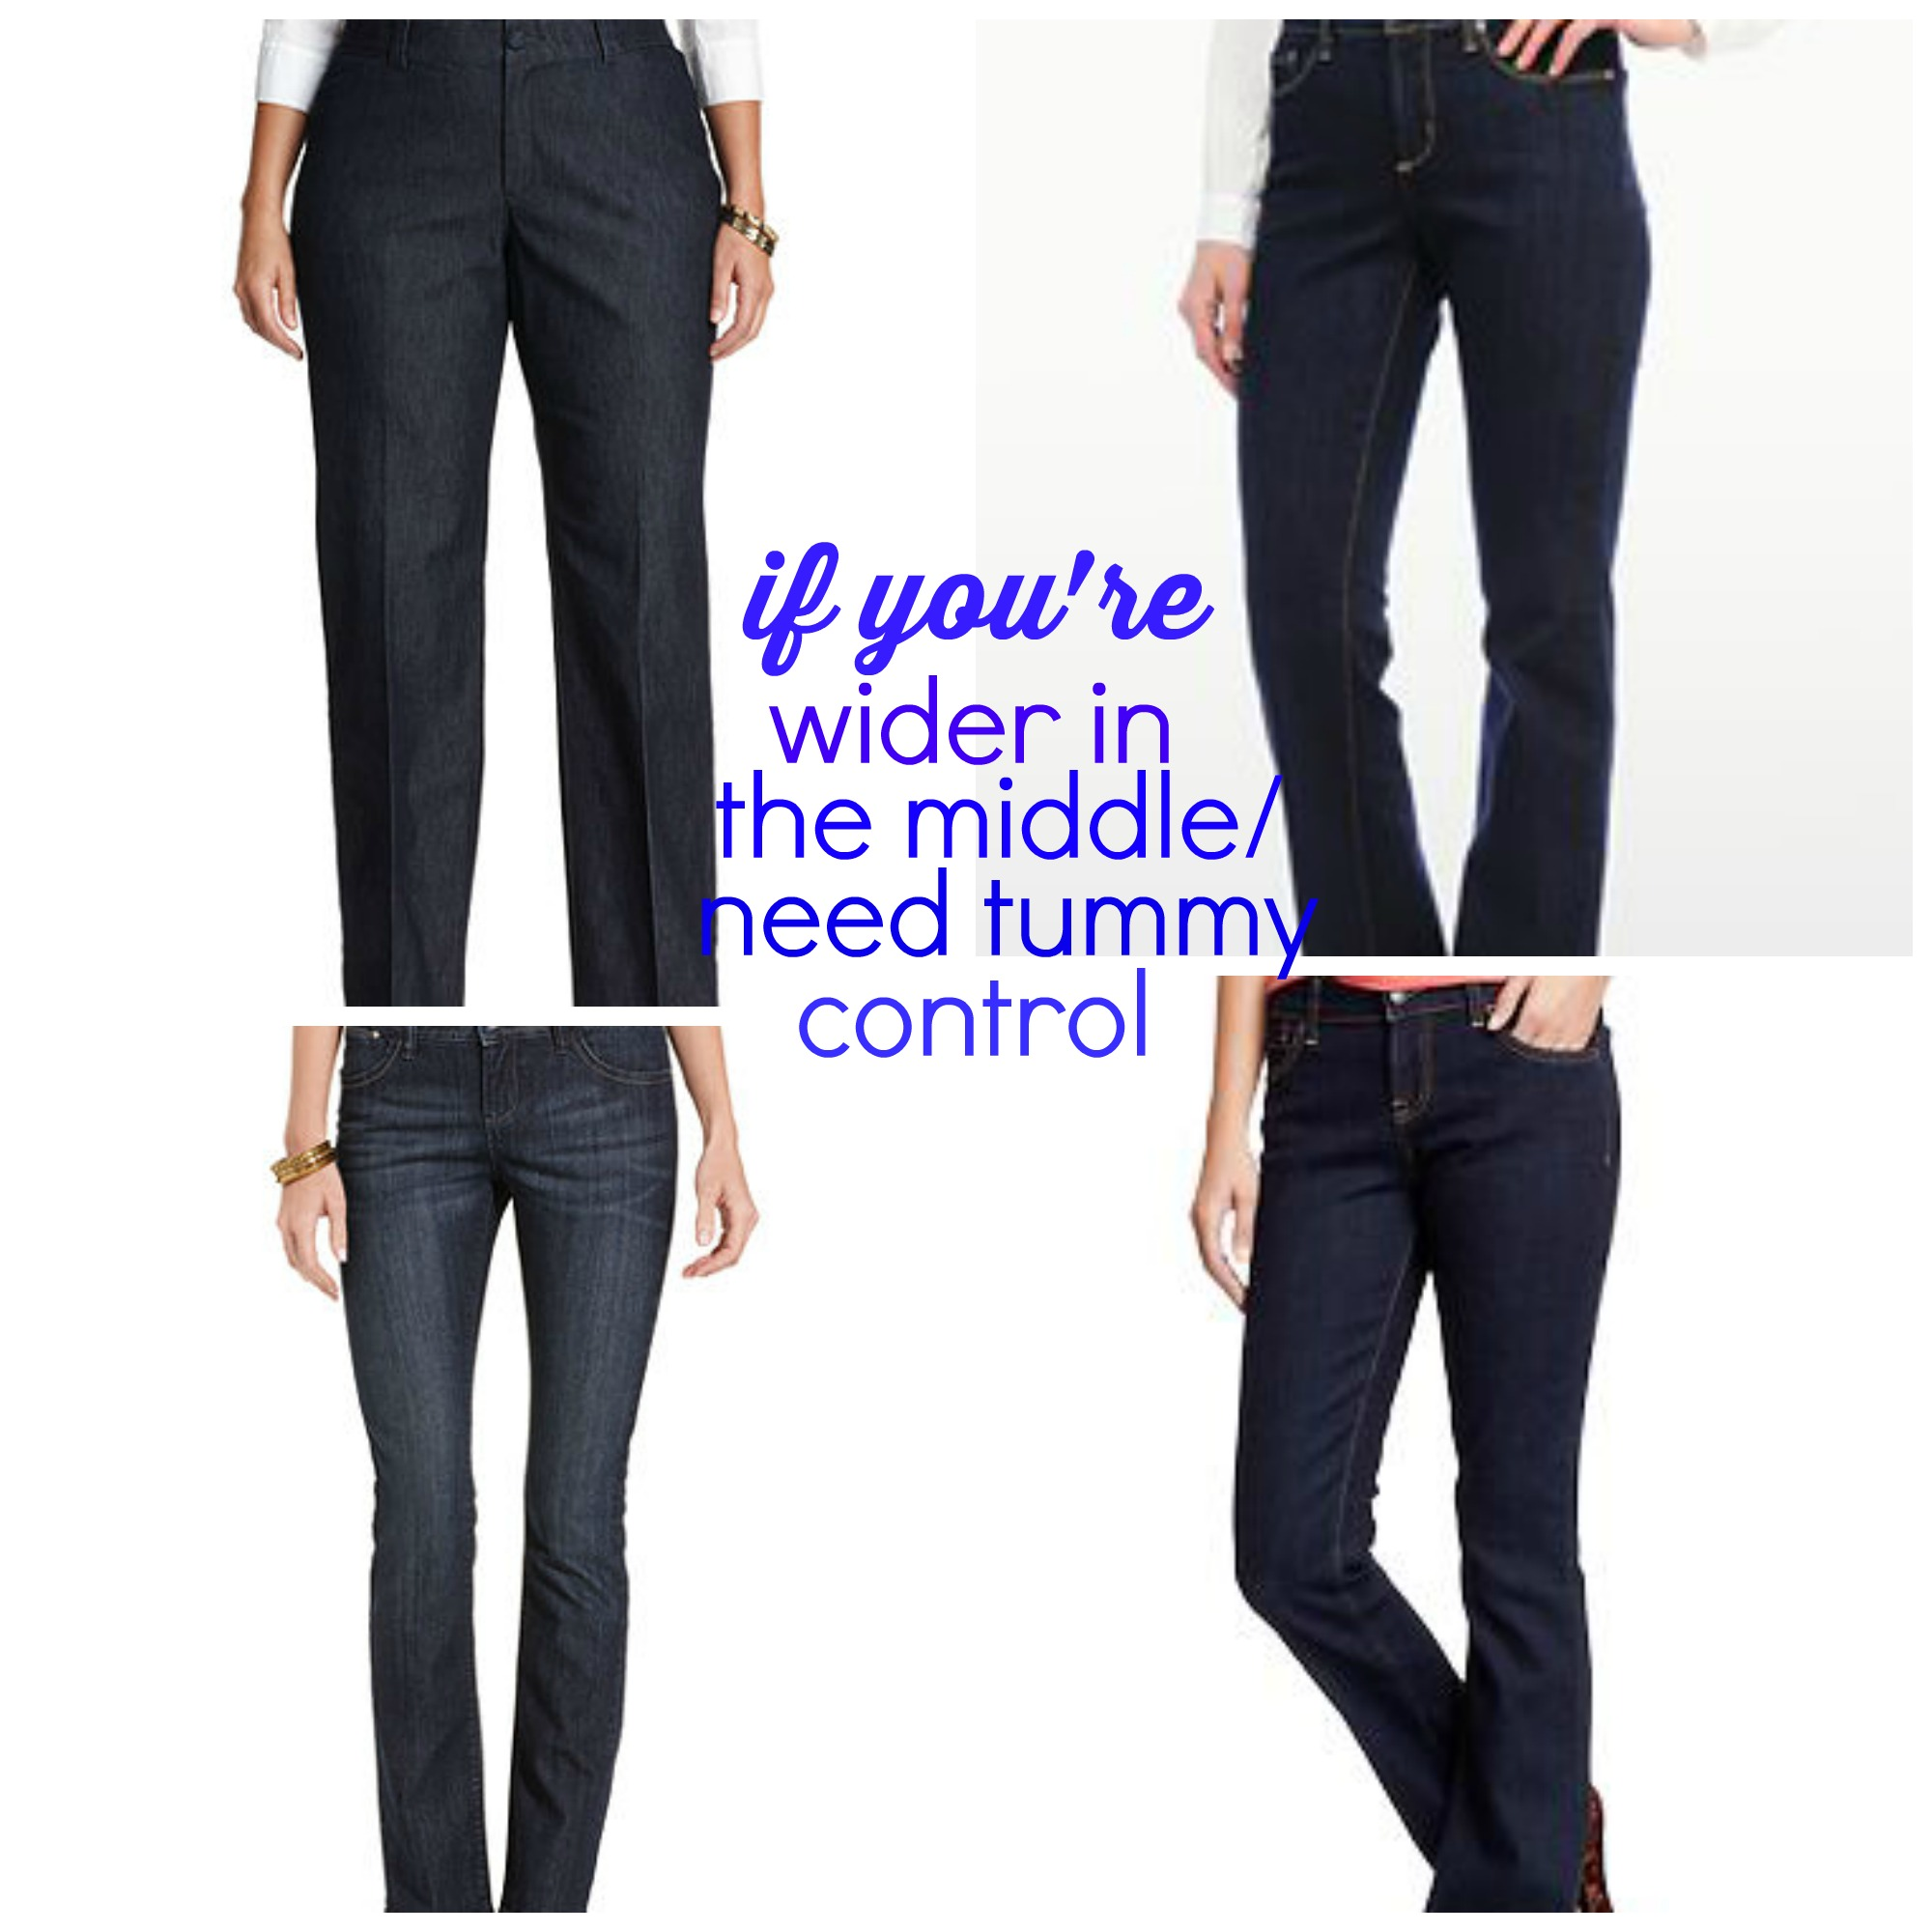 Fashion Fridays: The BEST Jeans For Your Body! | The Domestic Rebel